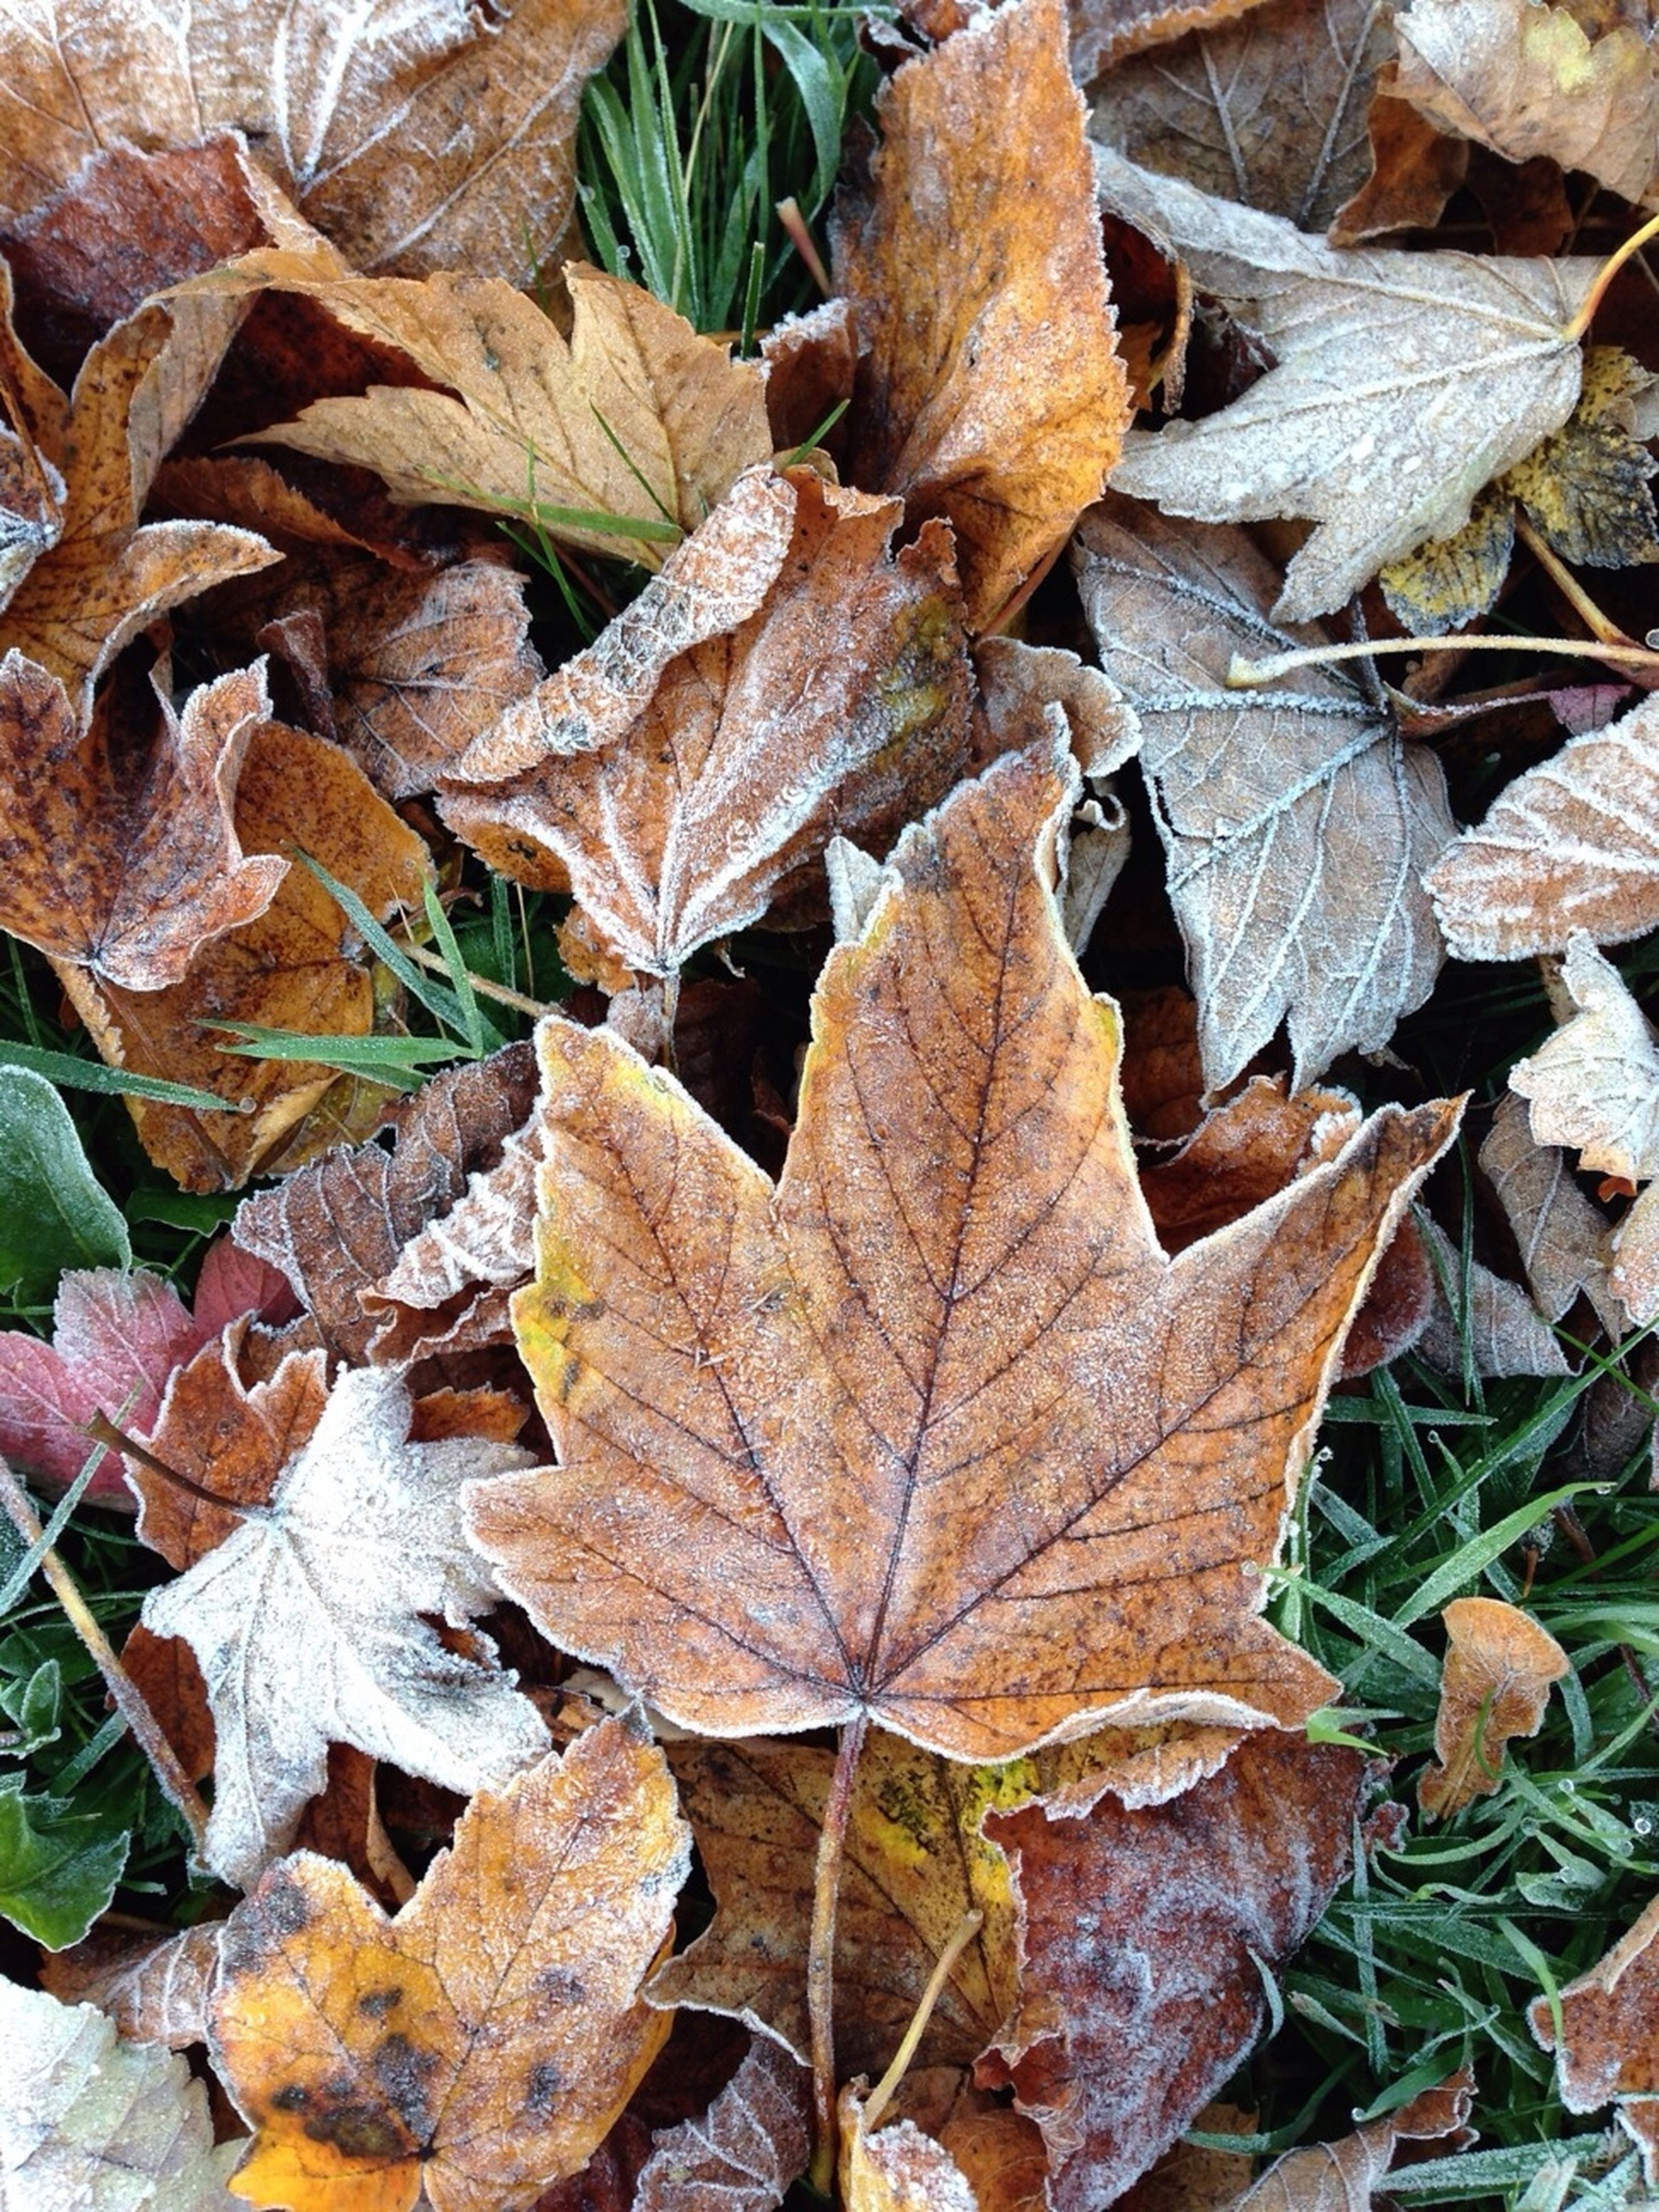 leaf, autumn, change, leaves, dry, season, leaf vein, close-up, full frame, high angle view, nature, fallen, maple leaf, natural pattern, backgrounds, day, aging process, outdoors, field, no people